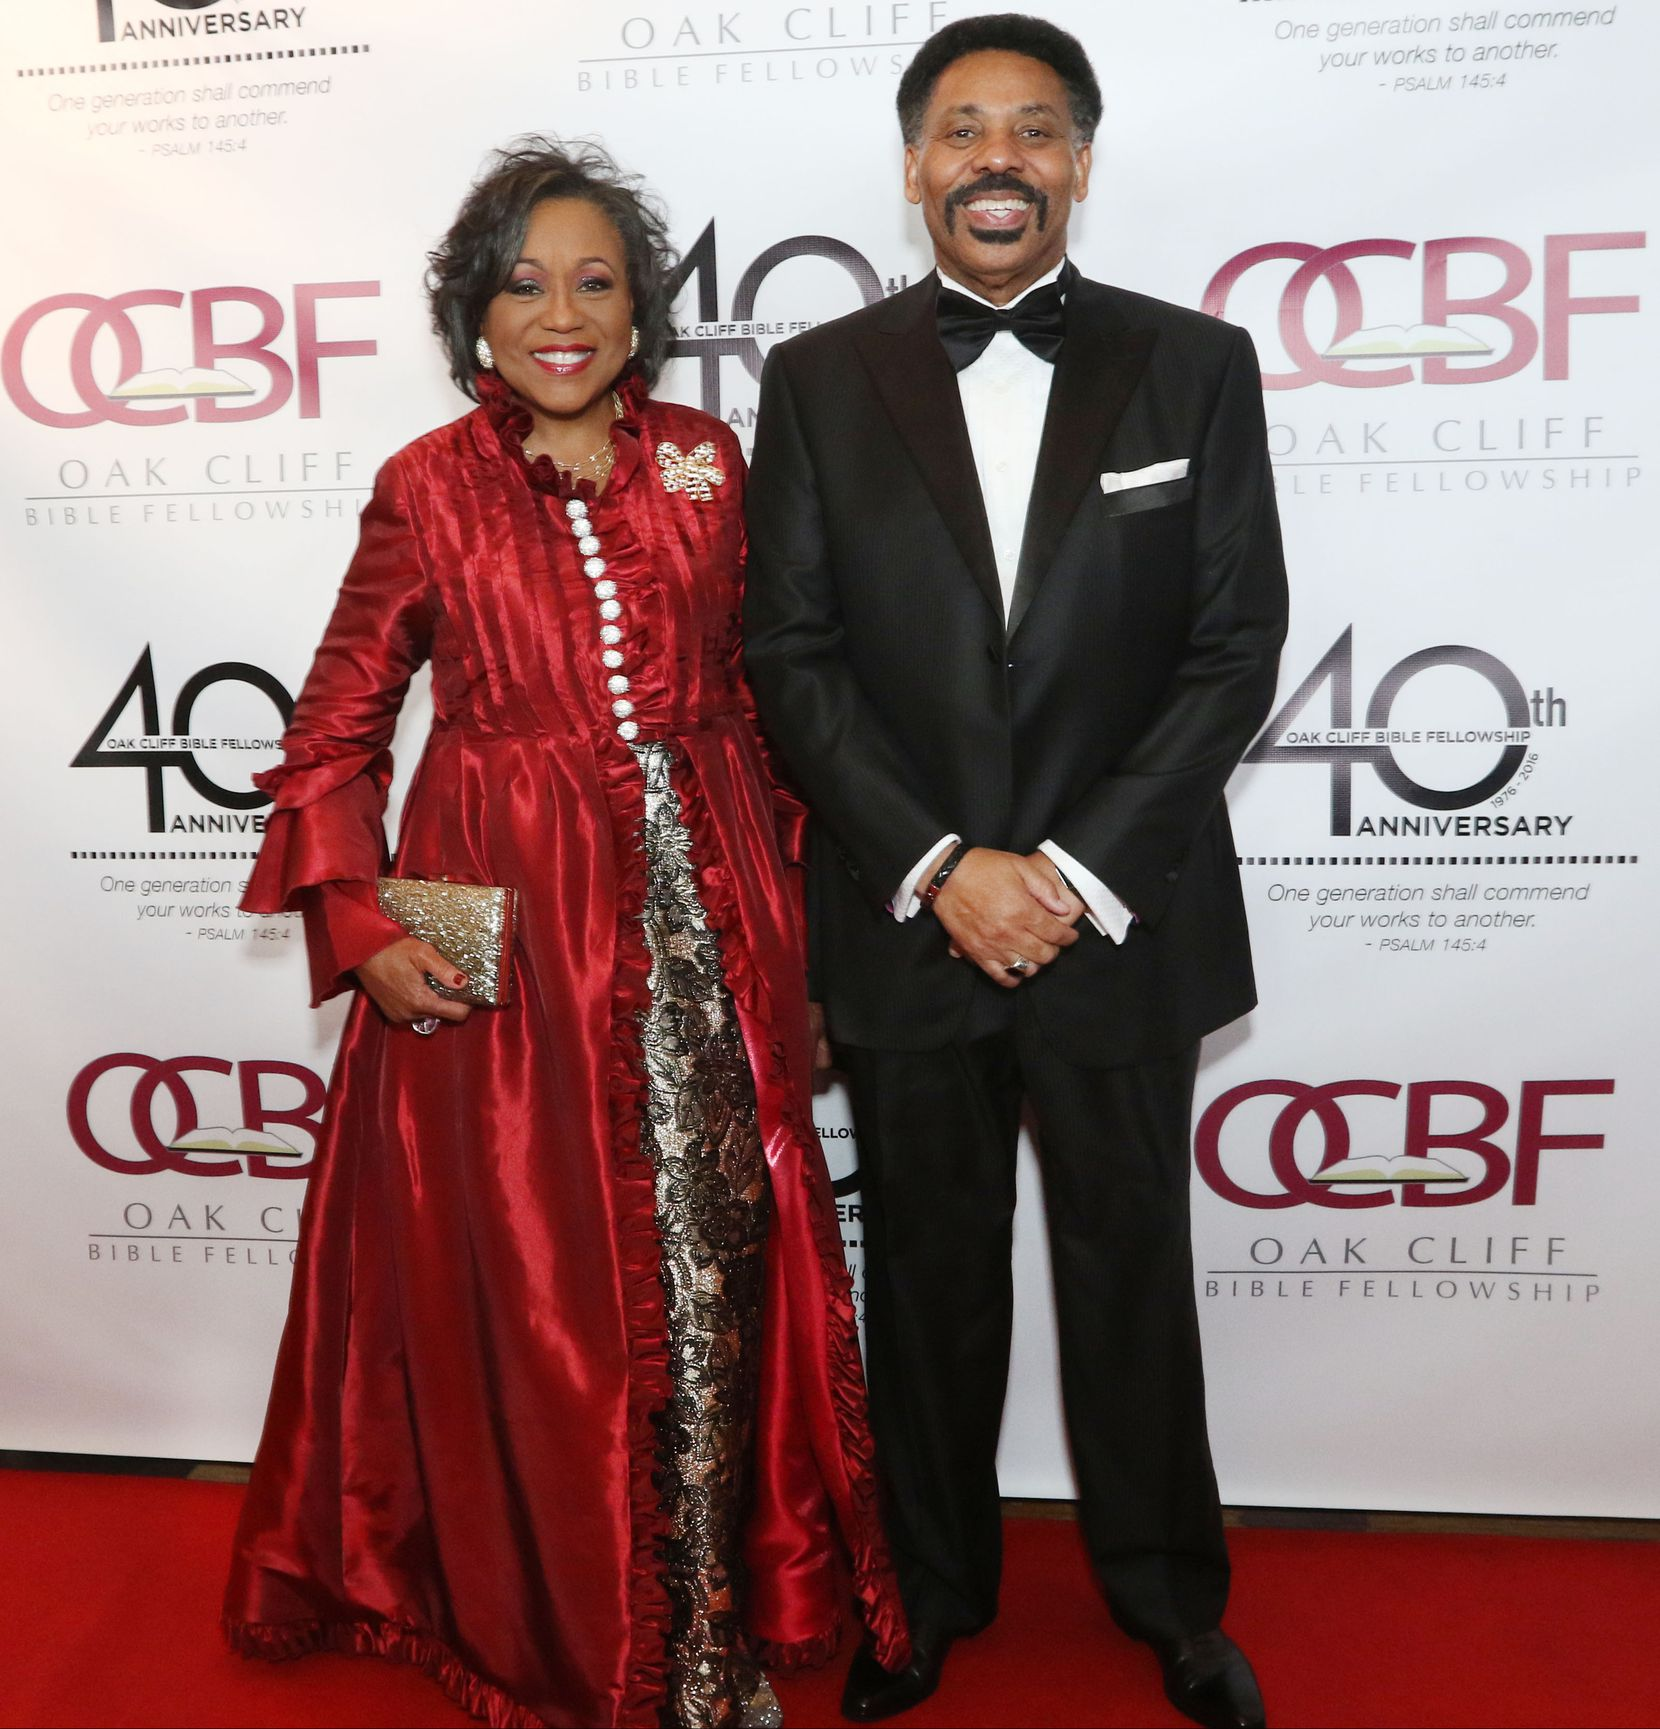 Tony Evans and his wife, Lois Evans, walked the red carpet at the 40th Anniversary Gala, attended by more than 2,200 of Oak Cliff Bible Fellowship's 12,000 members. The gala at Omni Dallas Hotel in 2016 featured national recording artist Erica Campbell, Fred Hammond and comedian John Gray as MC.